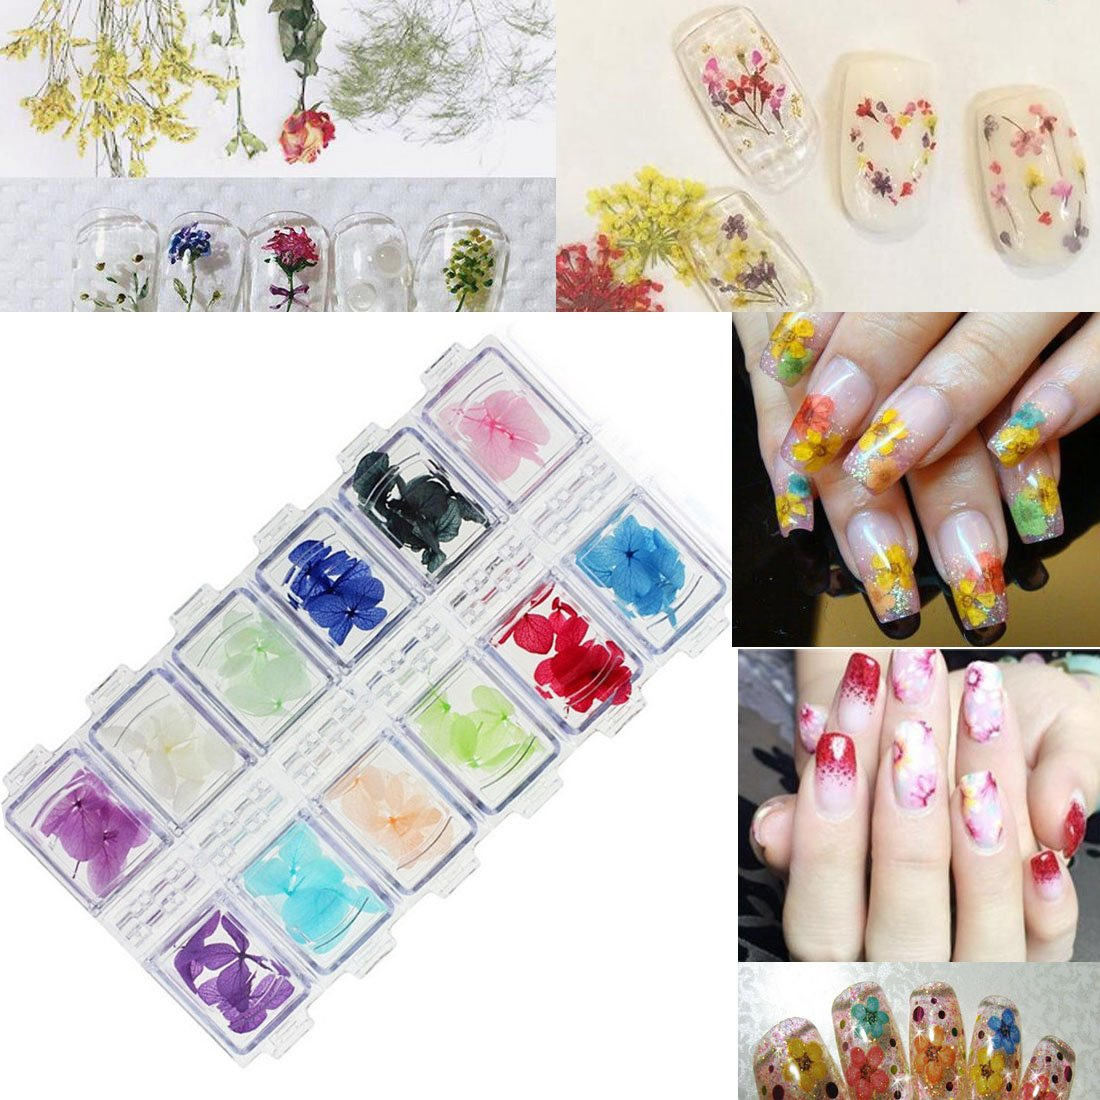 Lookathot 3D Design Nail Art Different Metallic Studs Mixed Colors Rhinestones Dried Flowers Loose Glitter Powder Manicure Nail Art Stickers Decals DIY Decoration Tools NS04